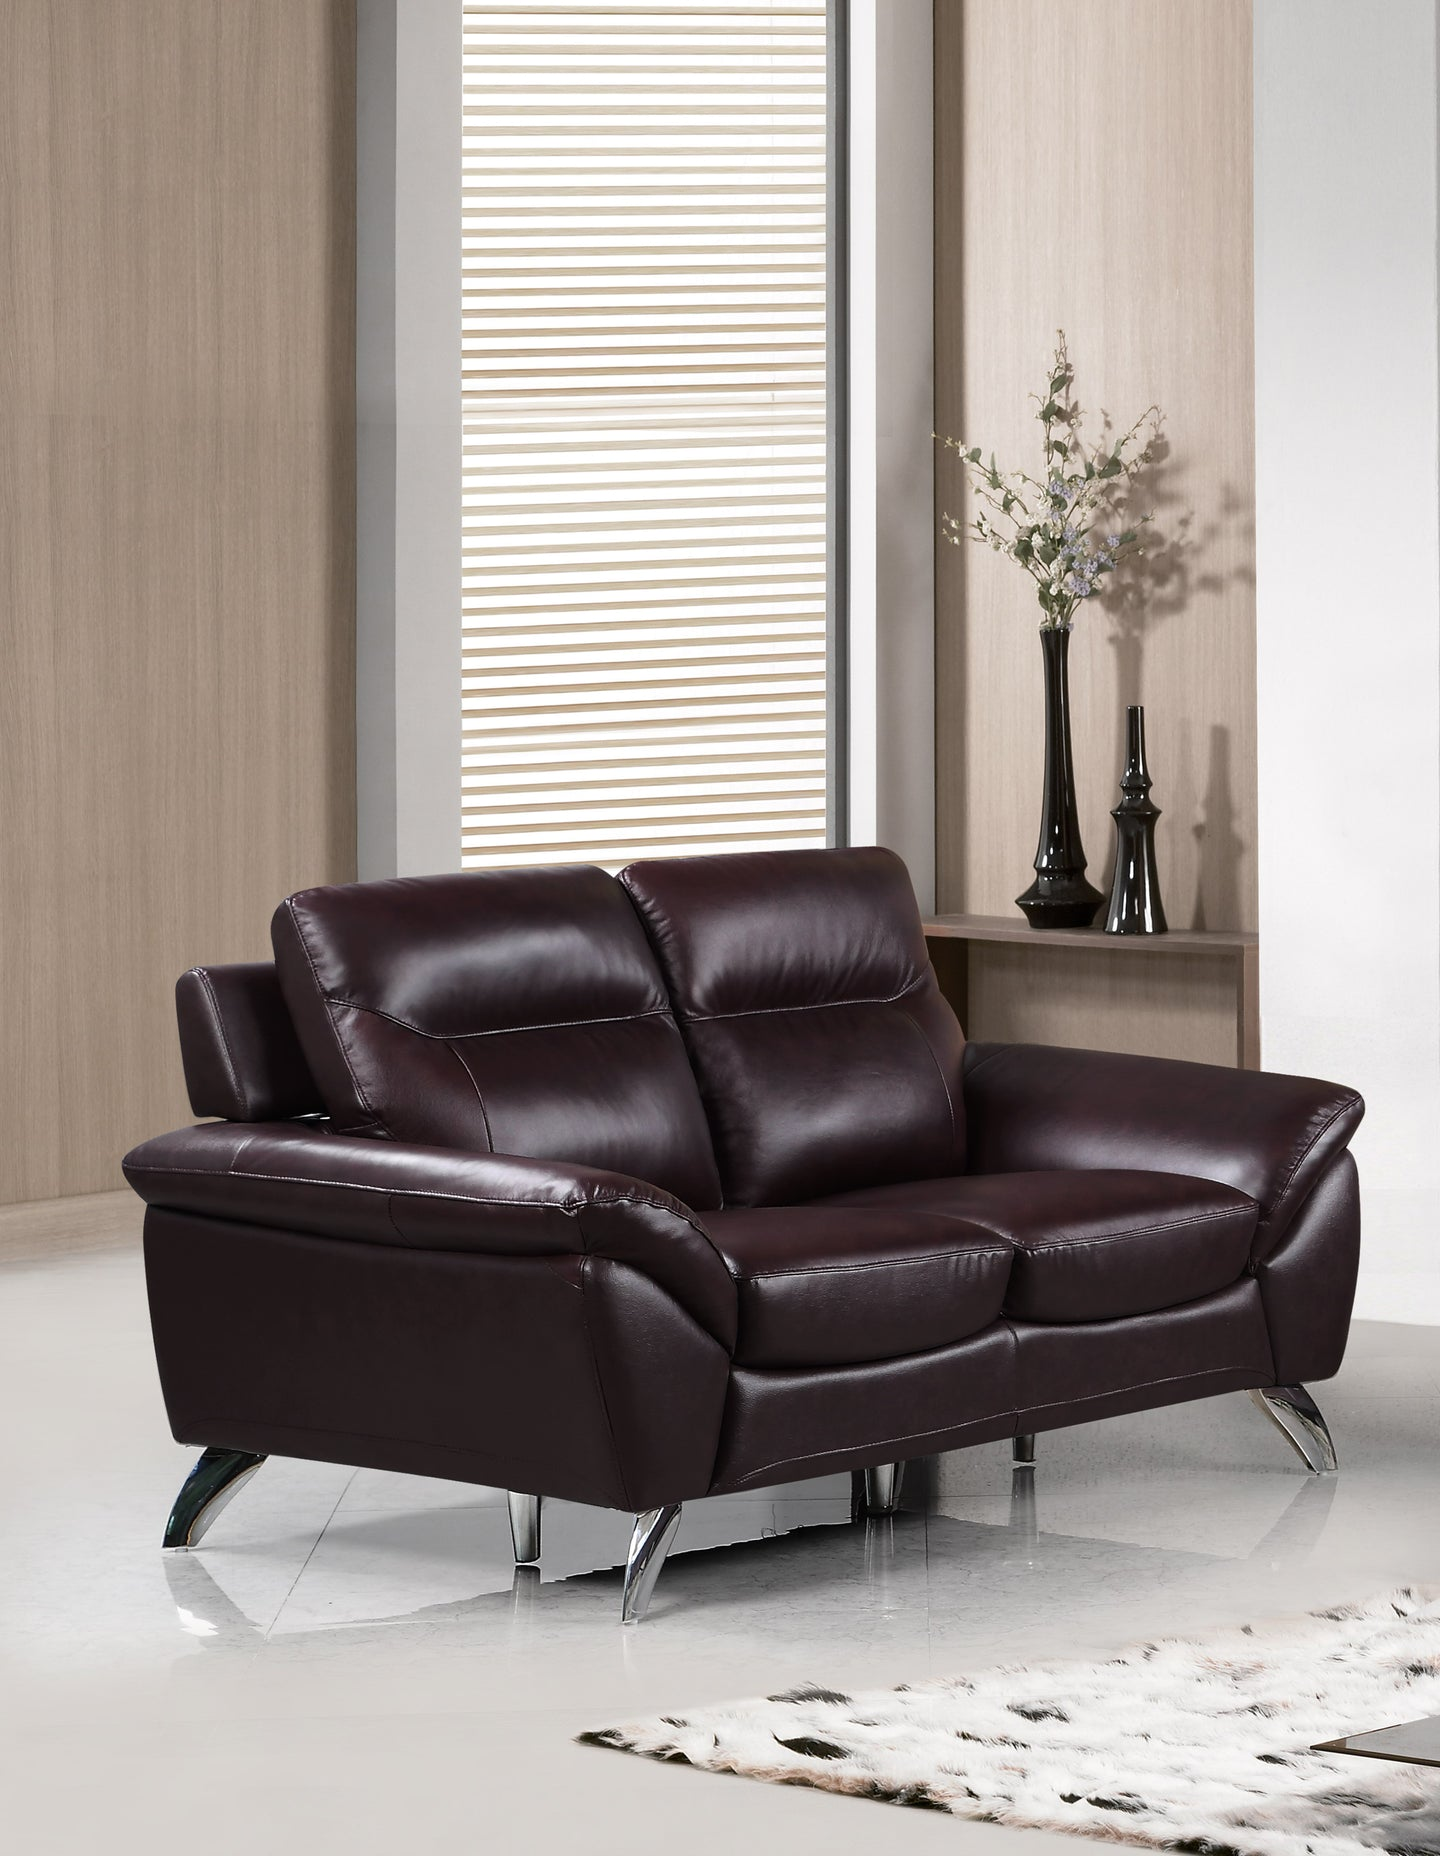 Cortesi Home Contemporary Madison Genuine Leather Loveseat, Deep Merlot 60